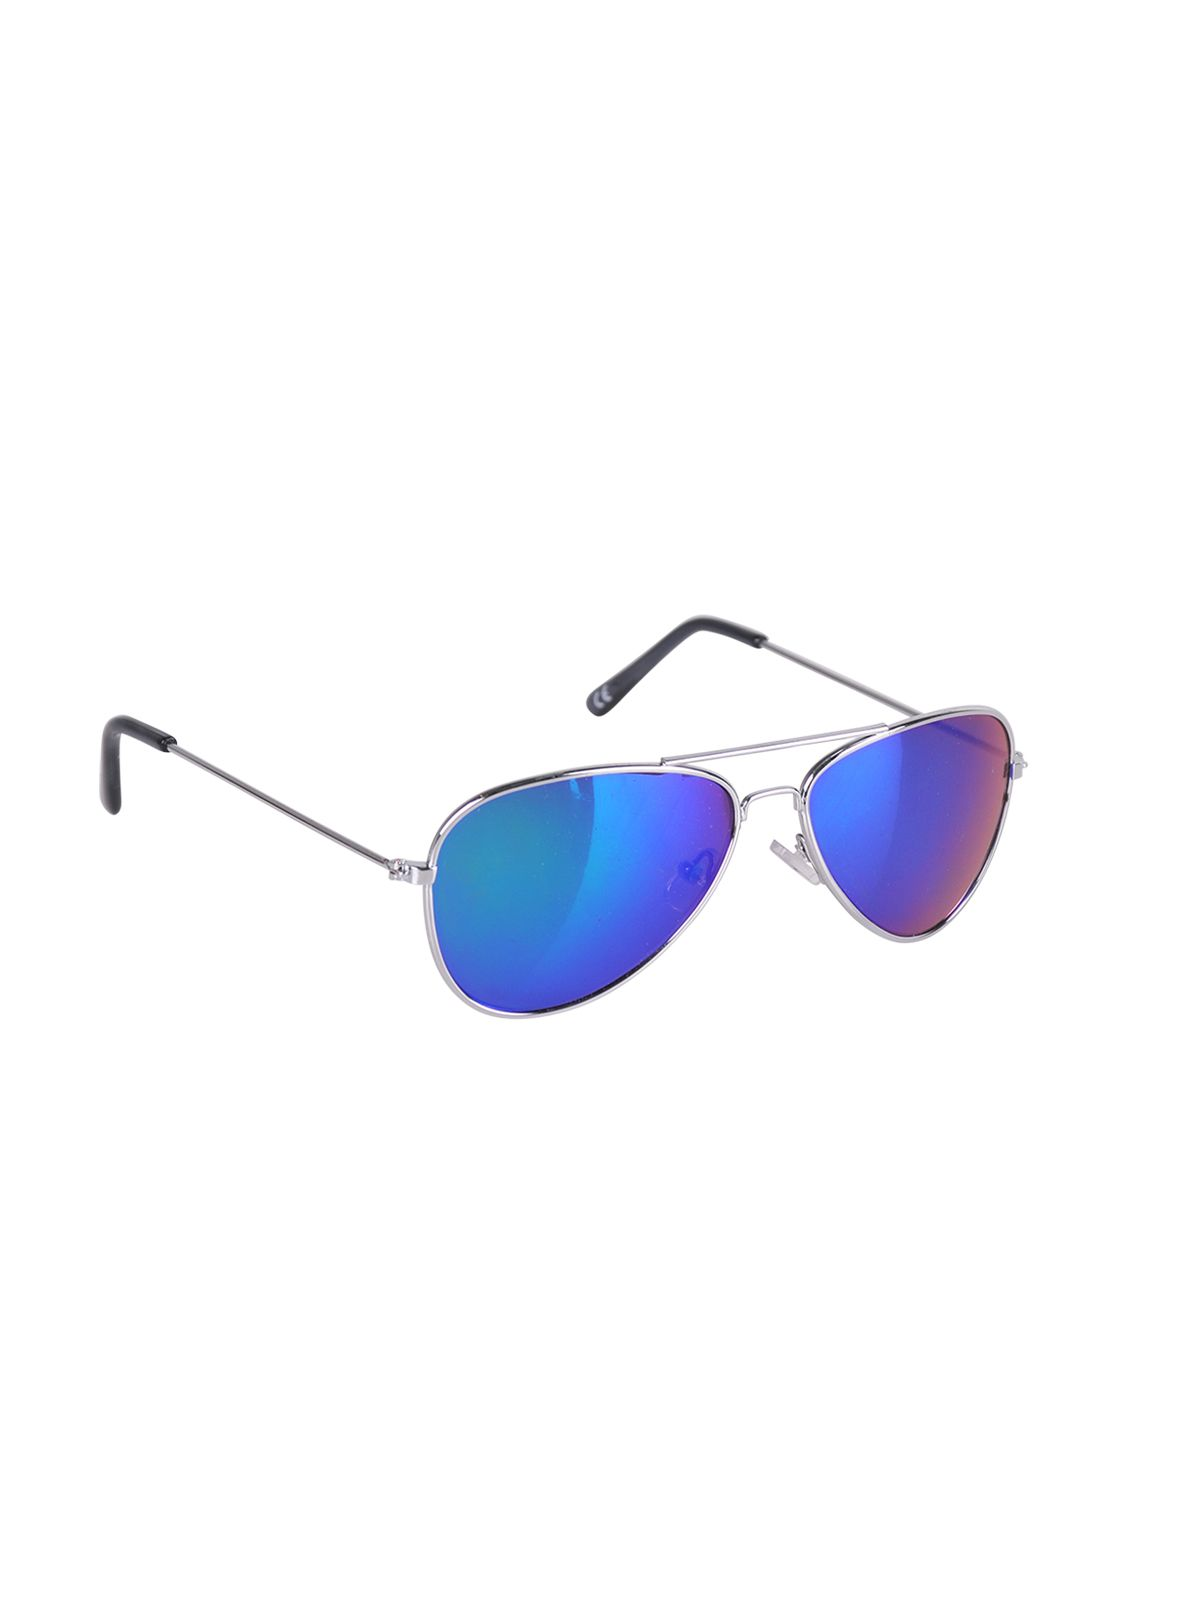 Boys revo aviator sunglasses